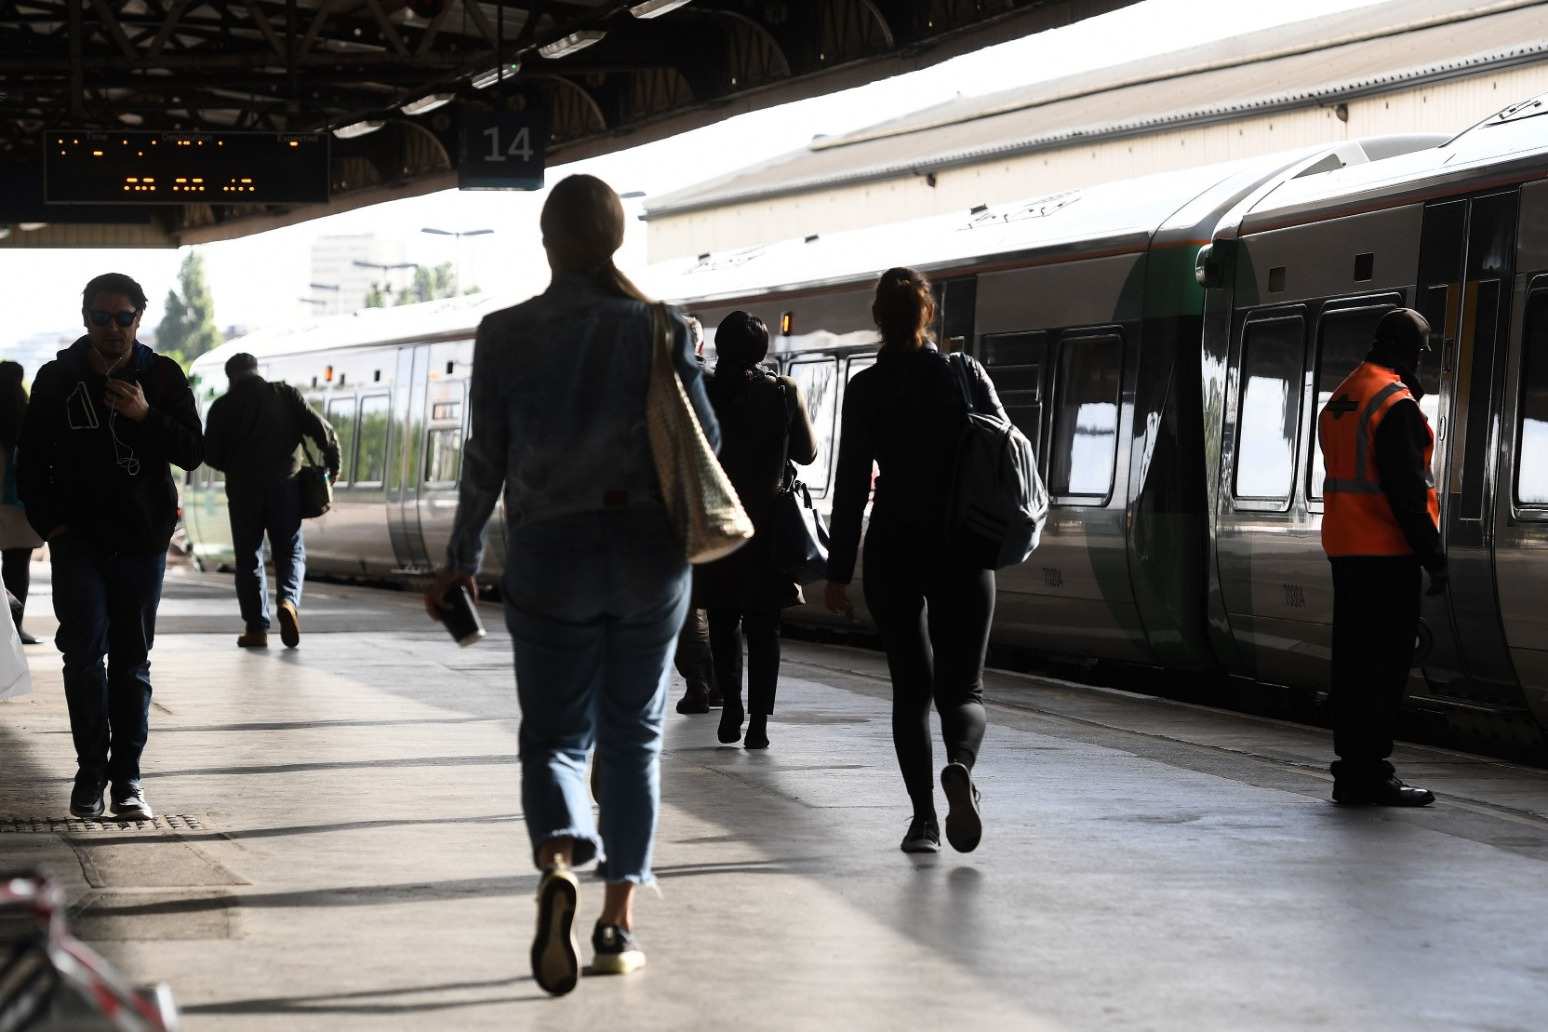 Demand for train travel remains low despite services being increased